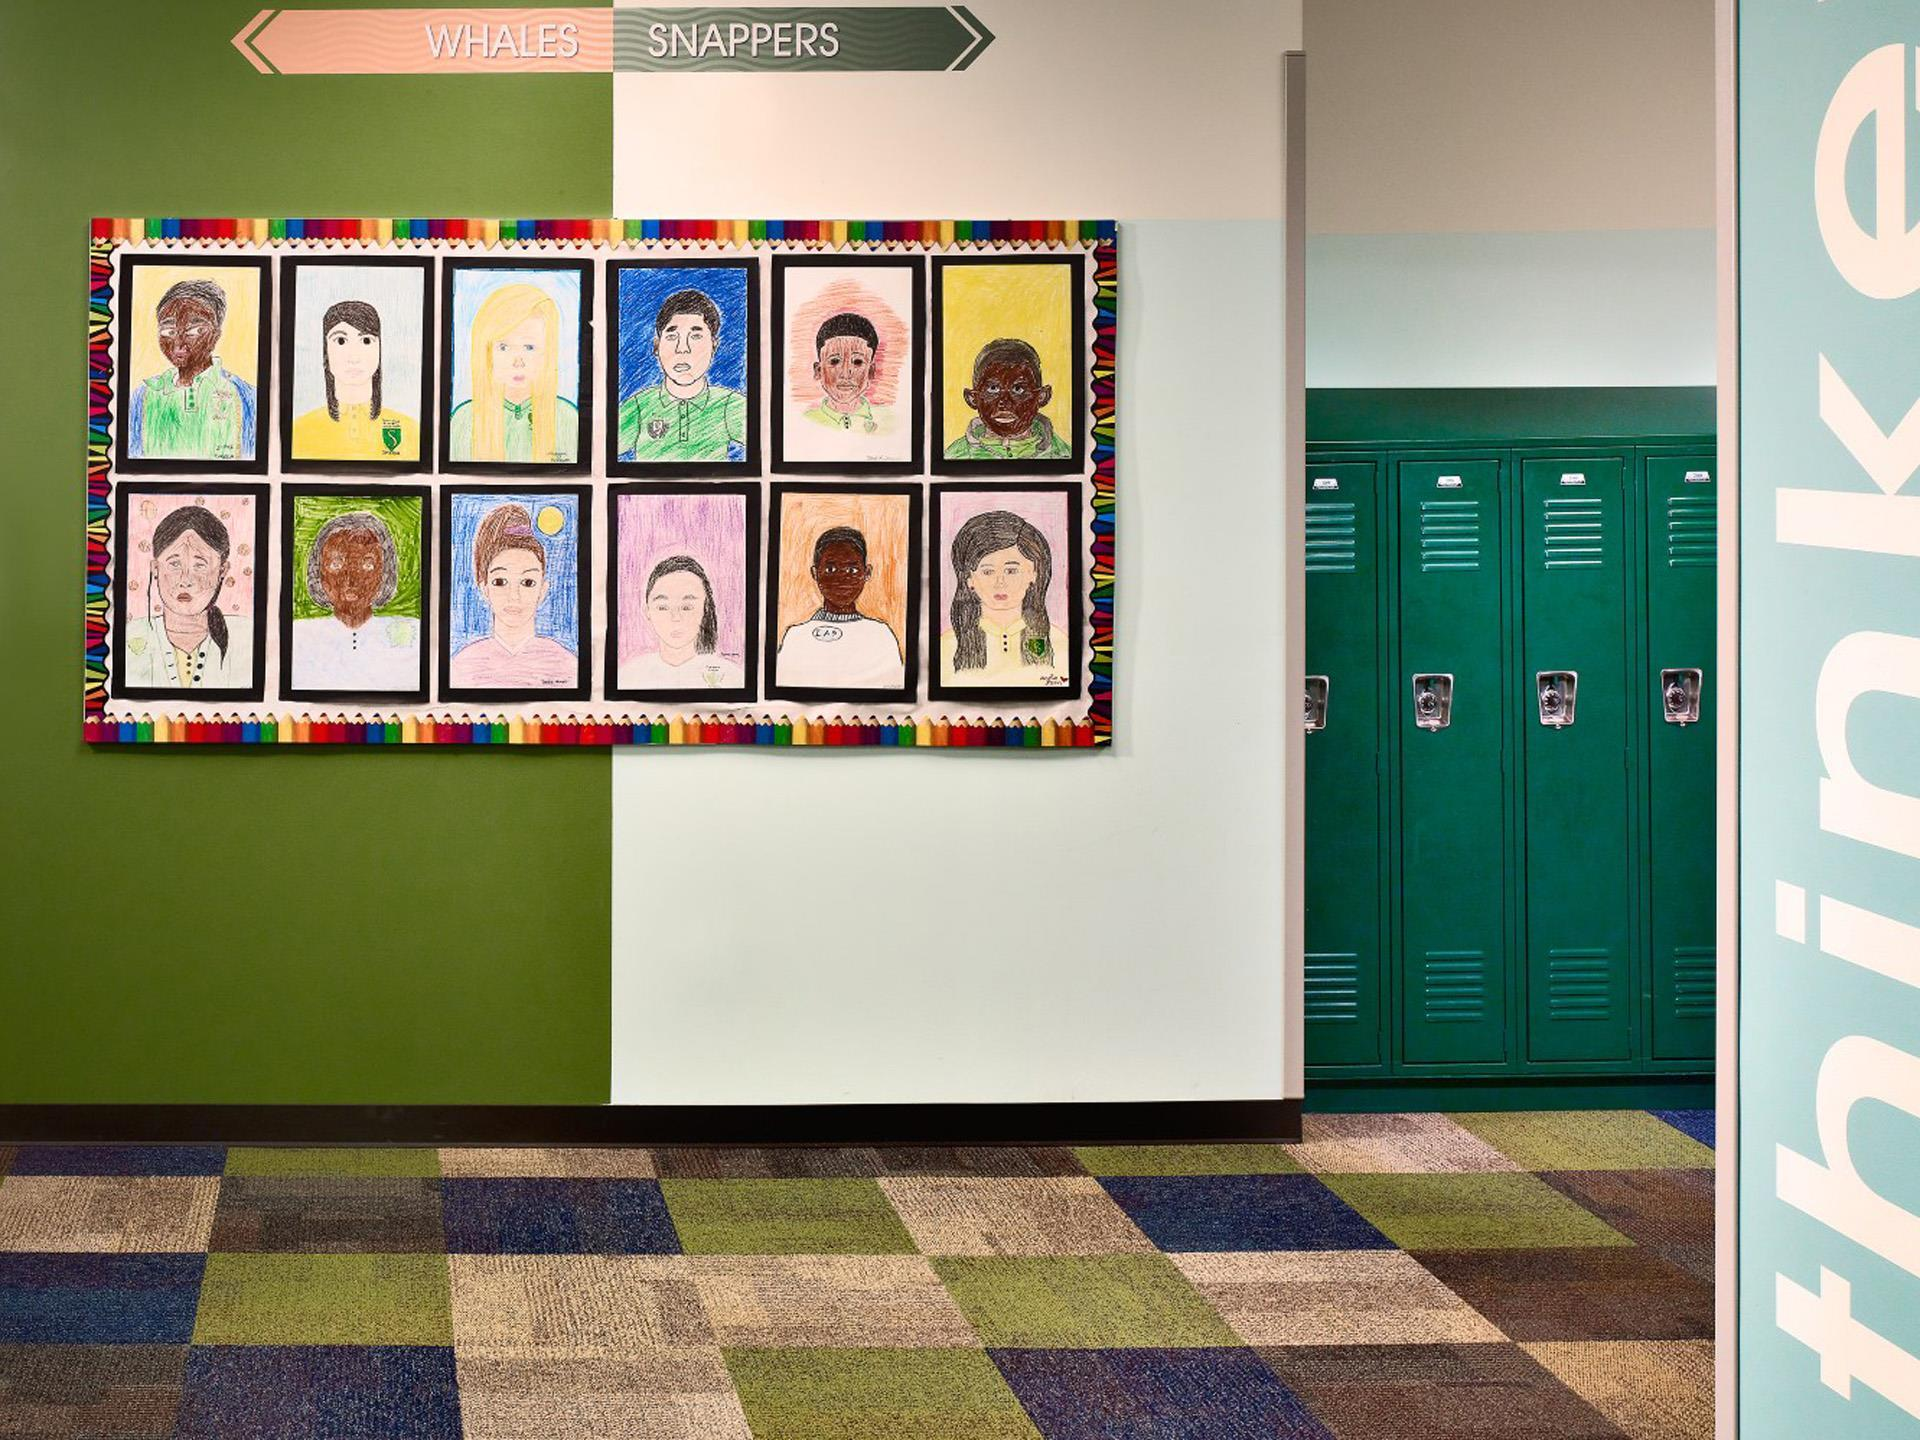 Cork board in school hallway with some lockers and checkered floor.